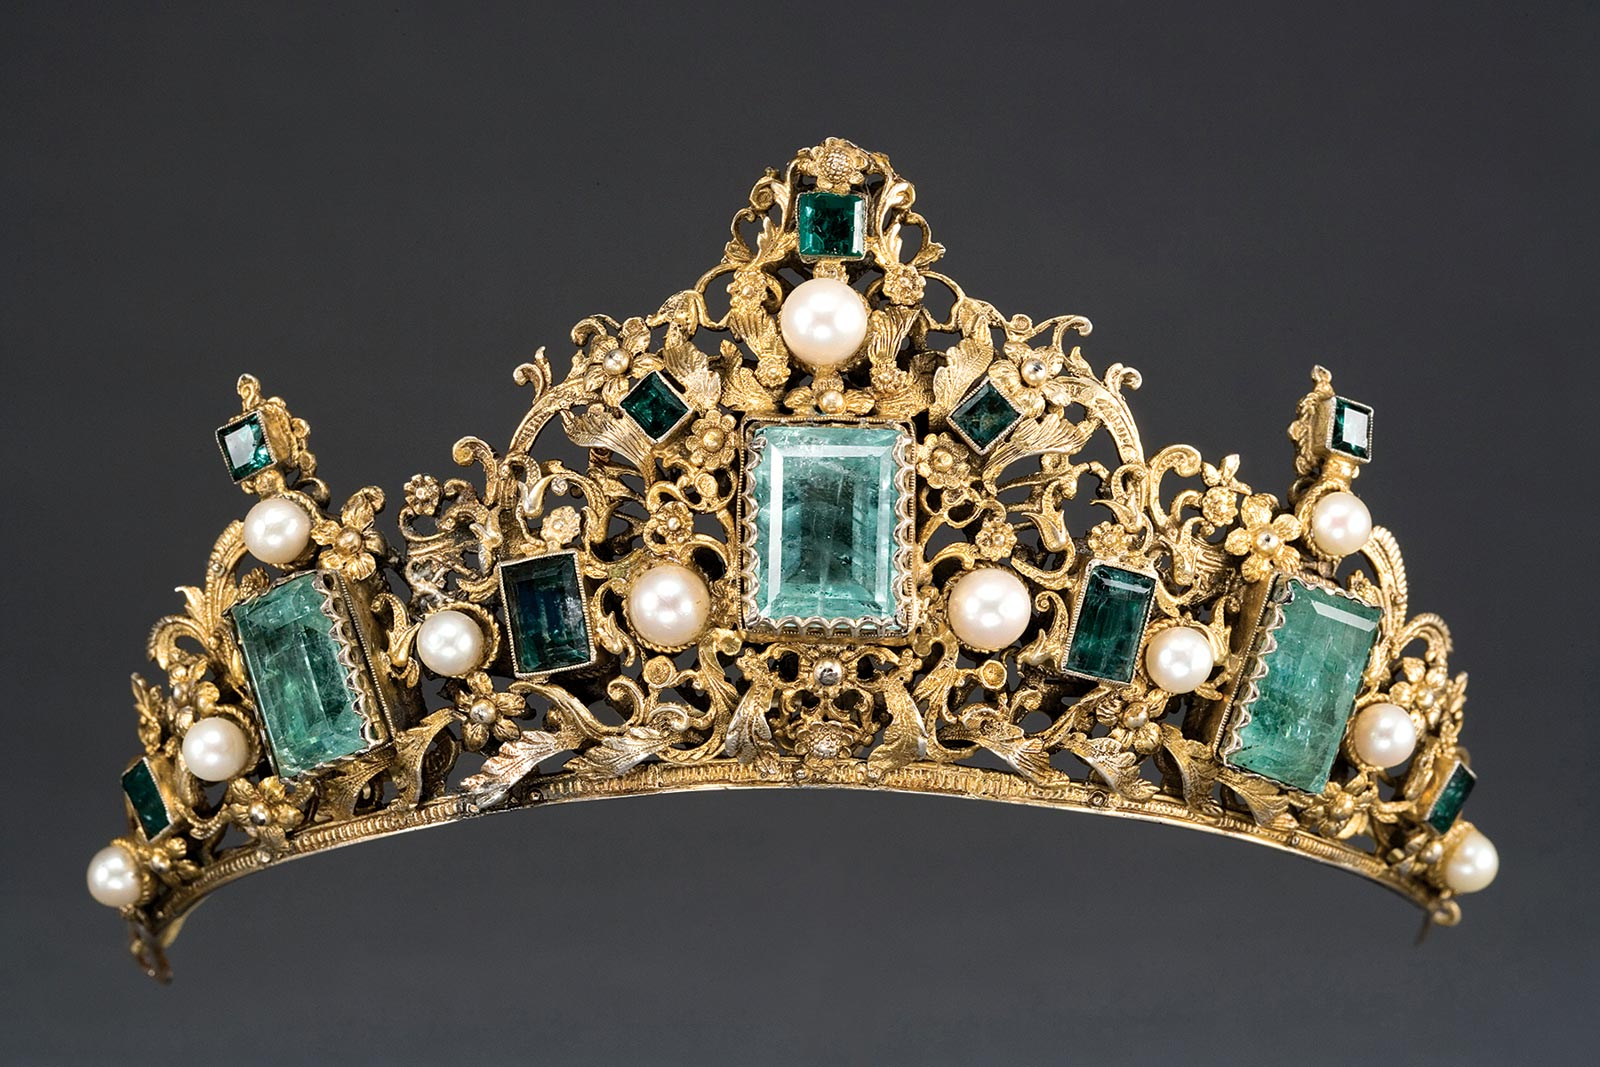 TIARA of gilt silver, emeralds, pearls, Colombia or Ecuador, circa 1690.